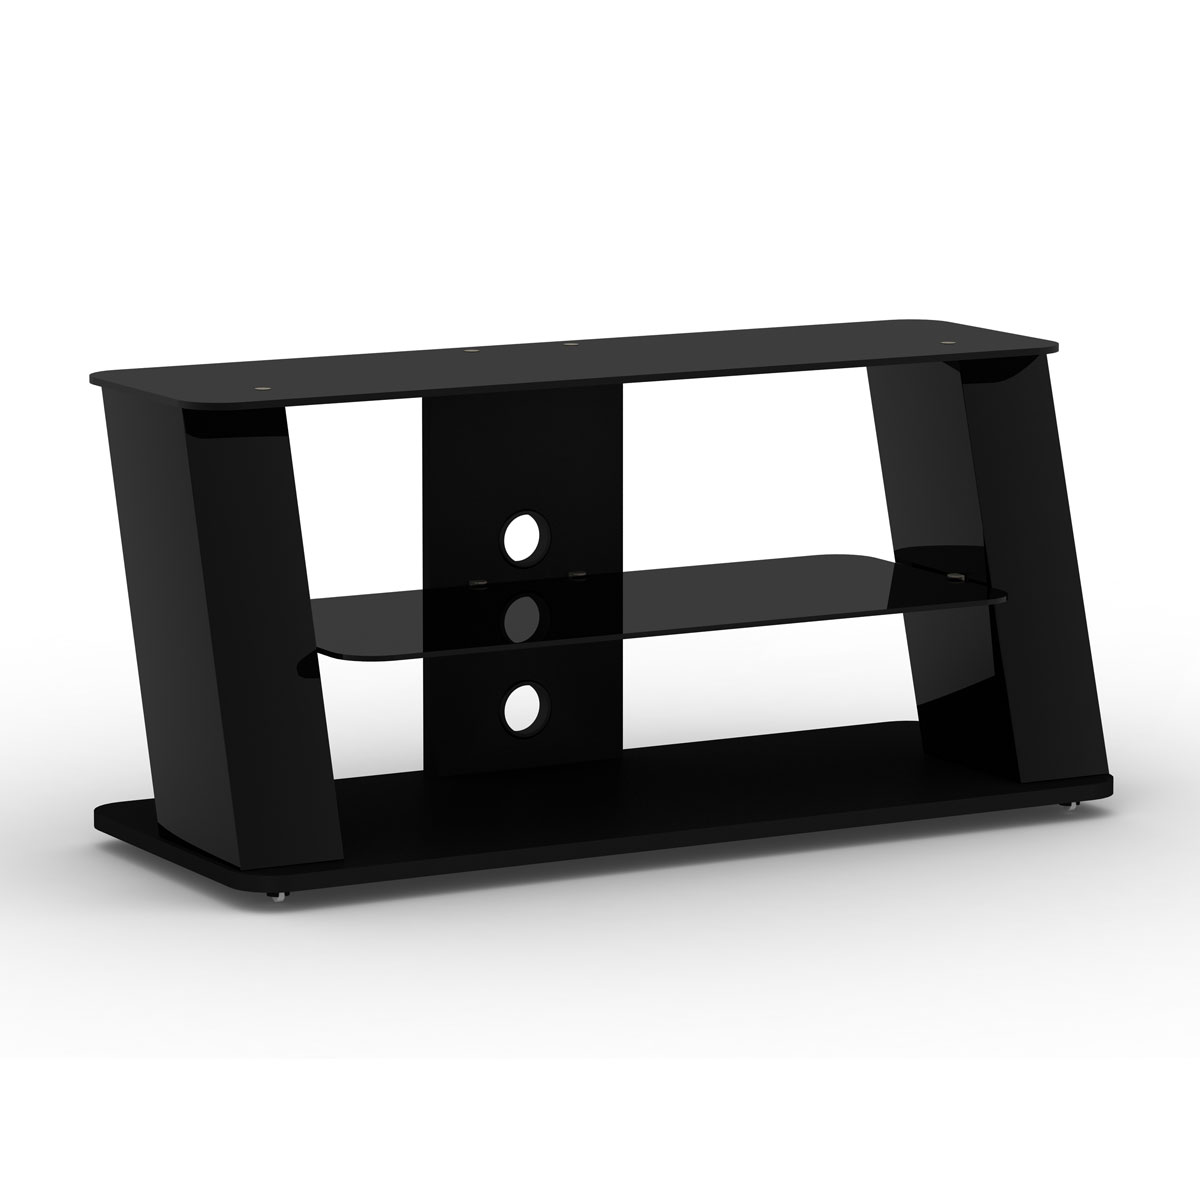 elmob alexa al 110 04 noir meuble tv elmob sur. Black Bedroom Furniture Sets. Home Design Ideas